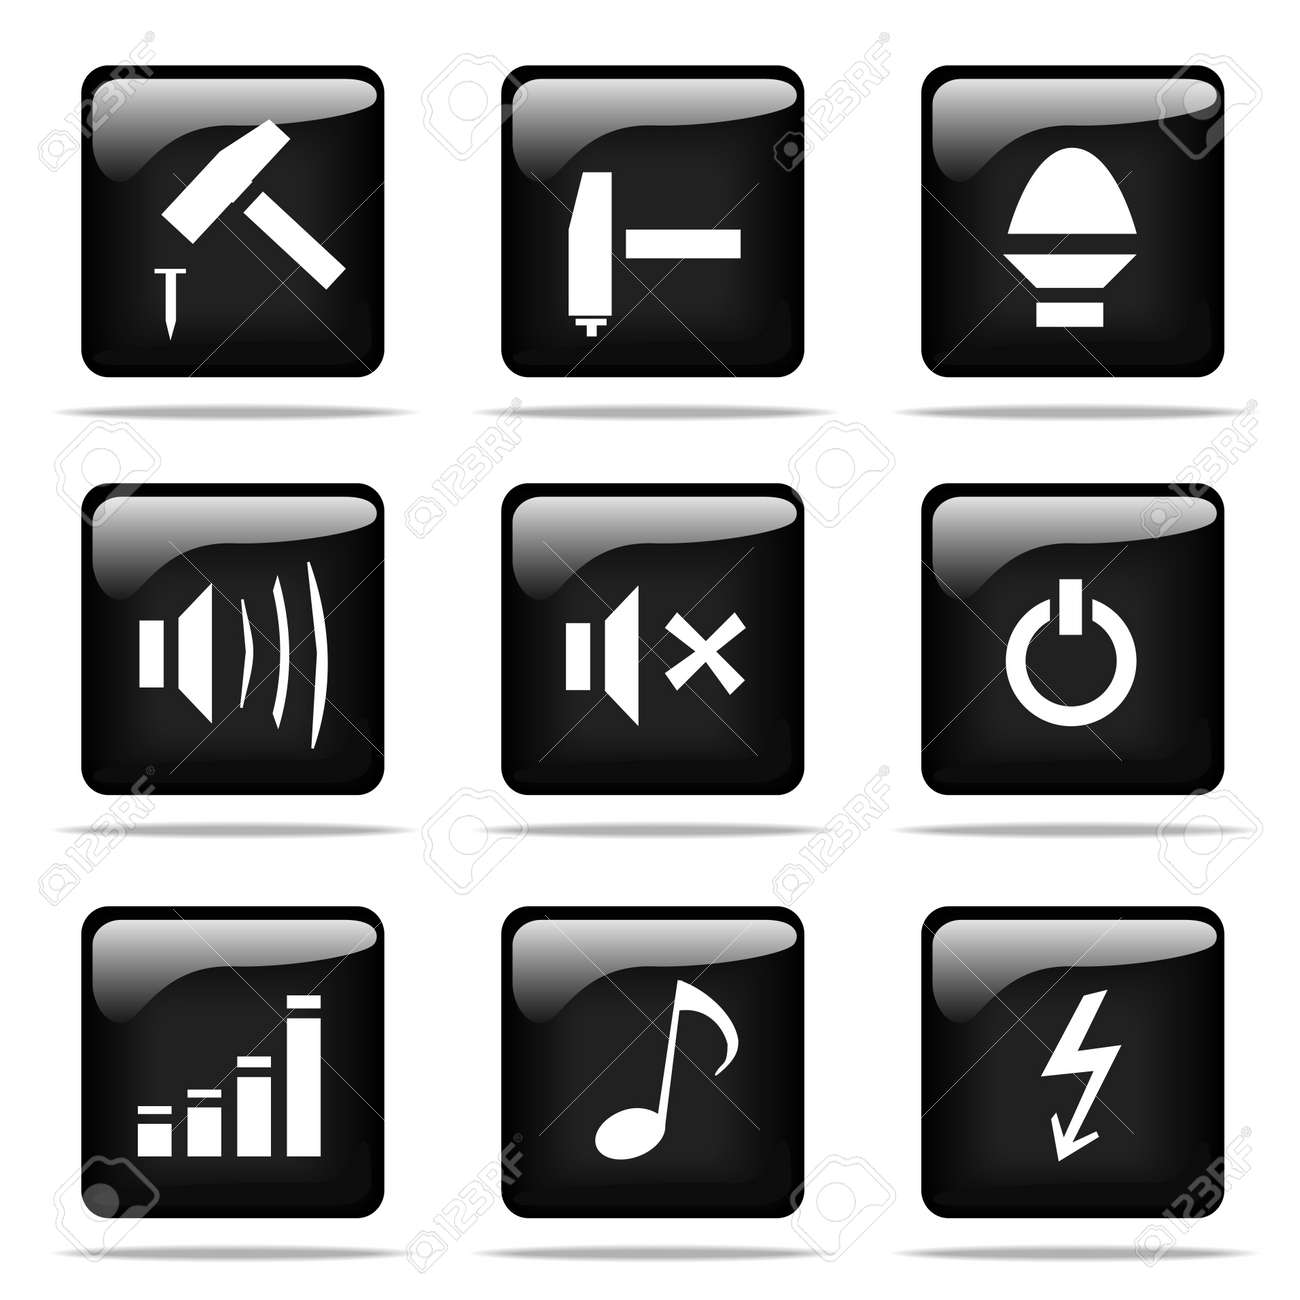 Set of glossy buttons with icons. Black and white series. Stock Photo - 3251821